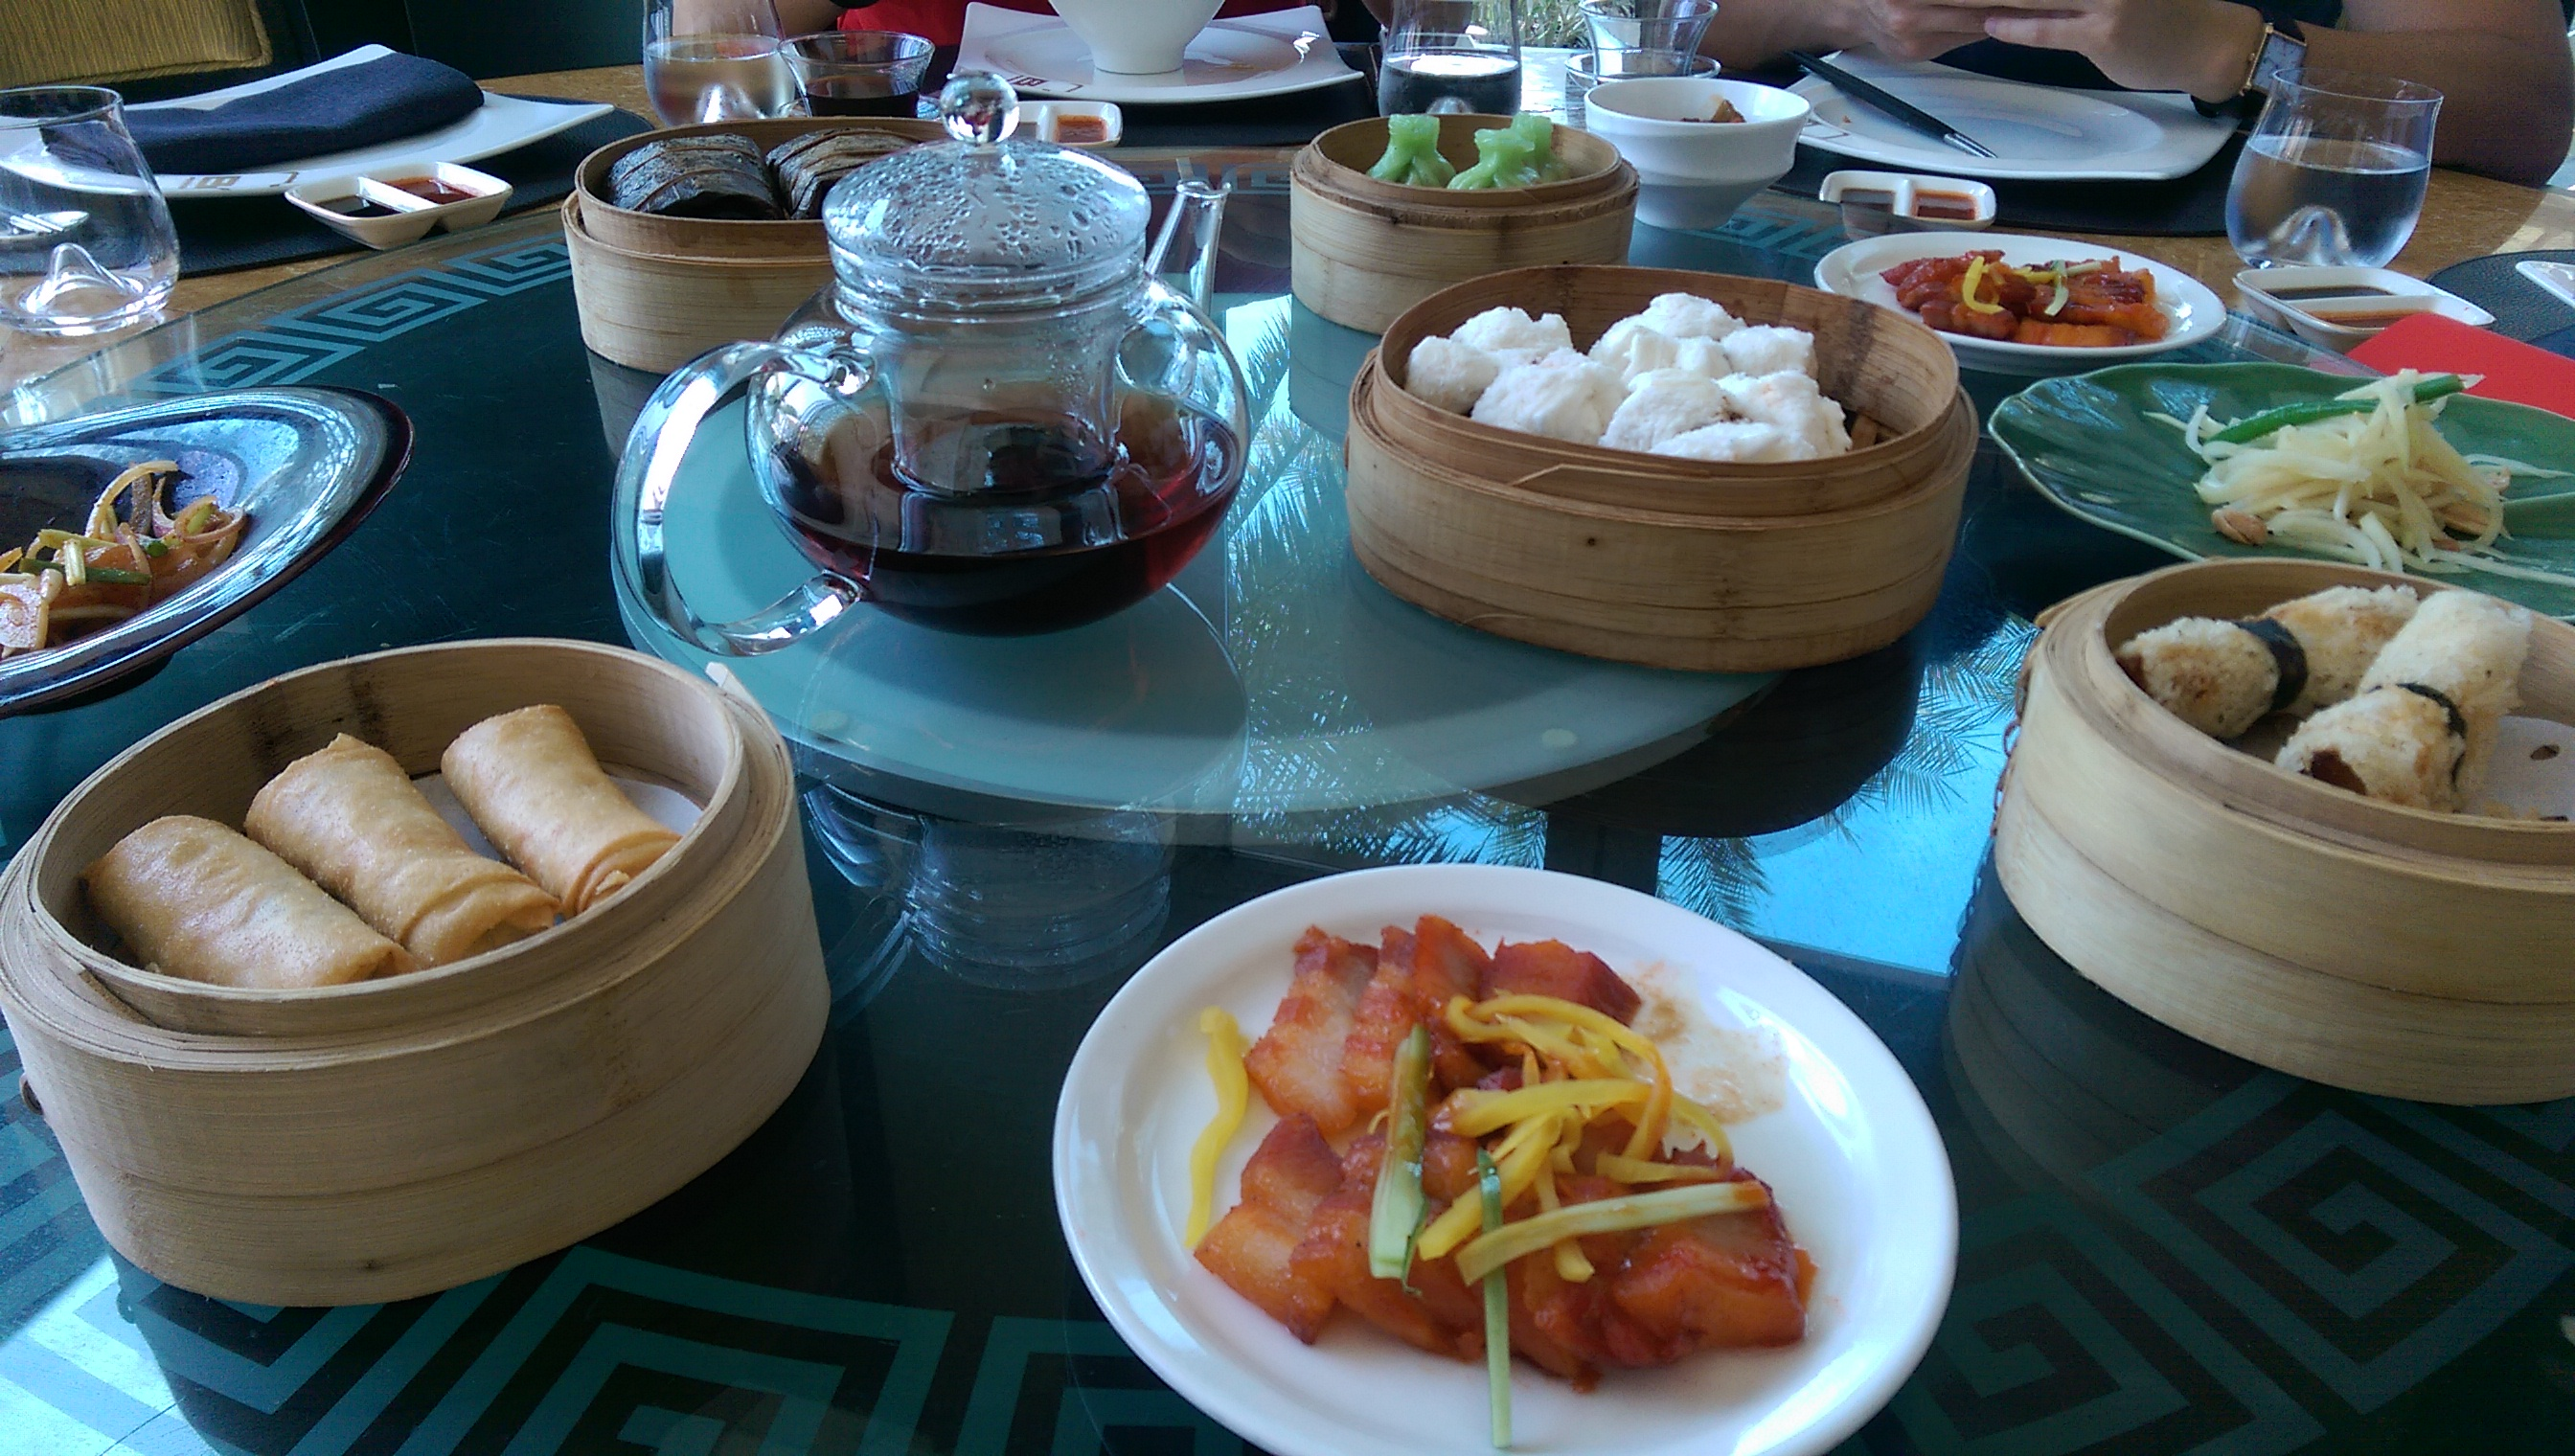 Yum Cha @ Ba Restaurant and Lounge – Lil One Of The Ashes